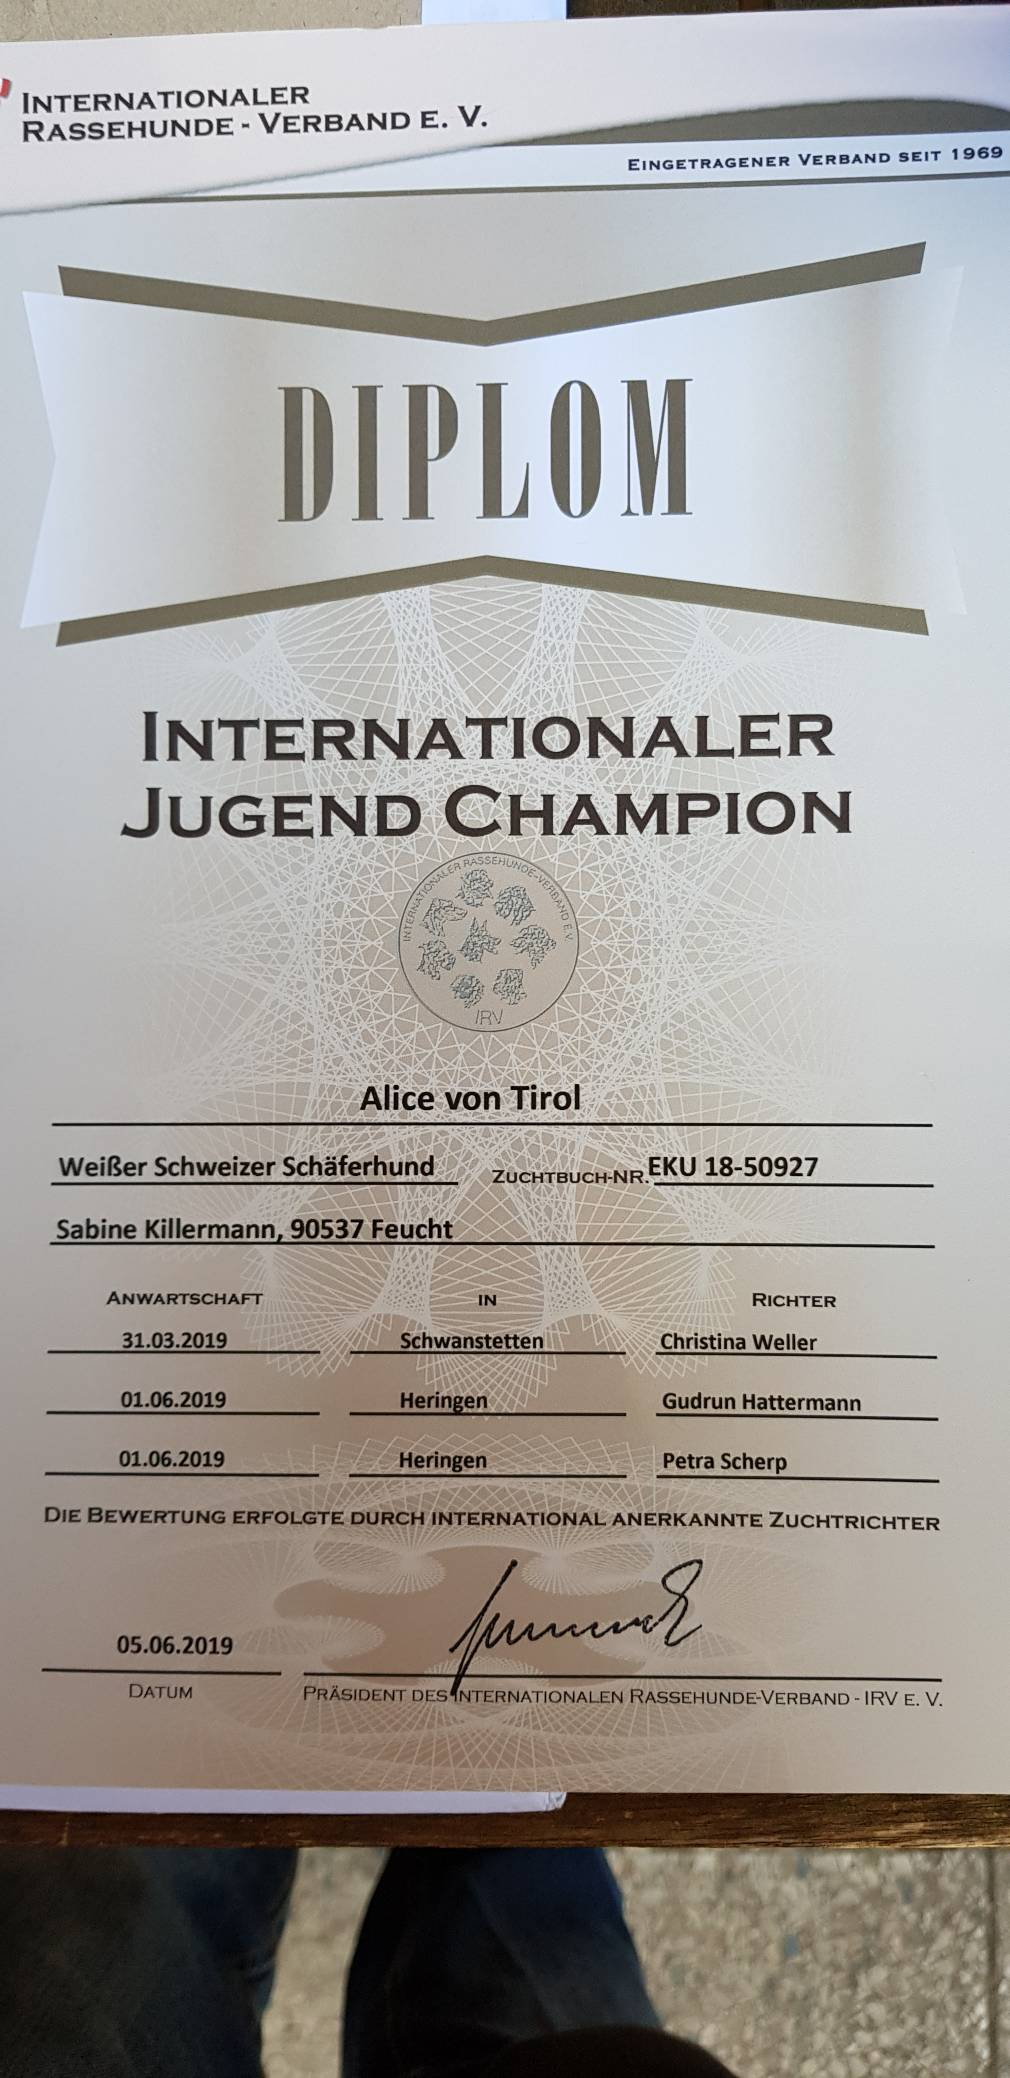 Internationaler Jugend Champion